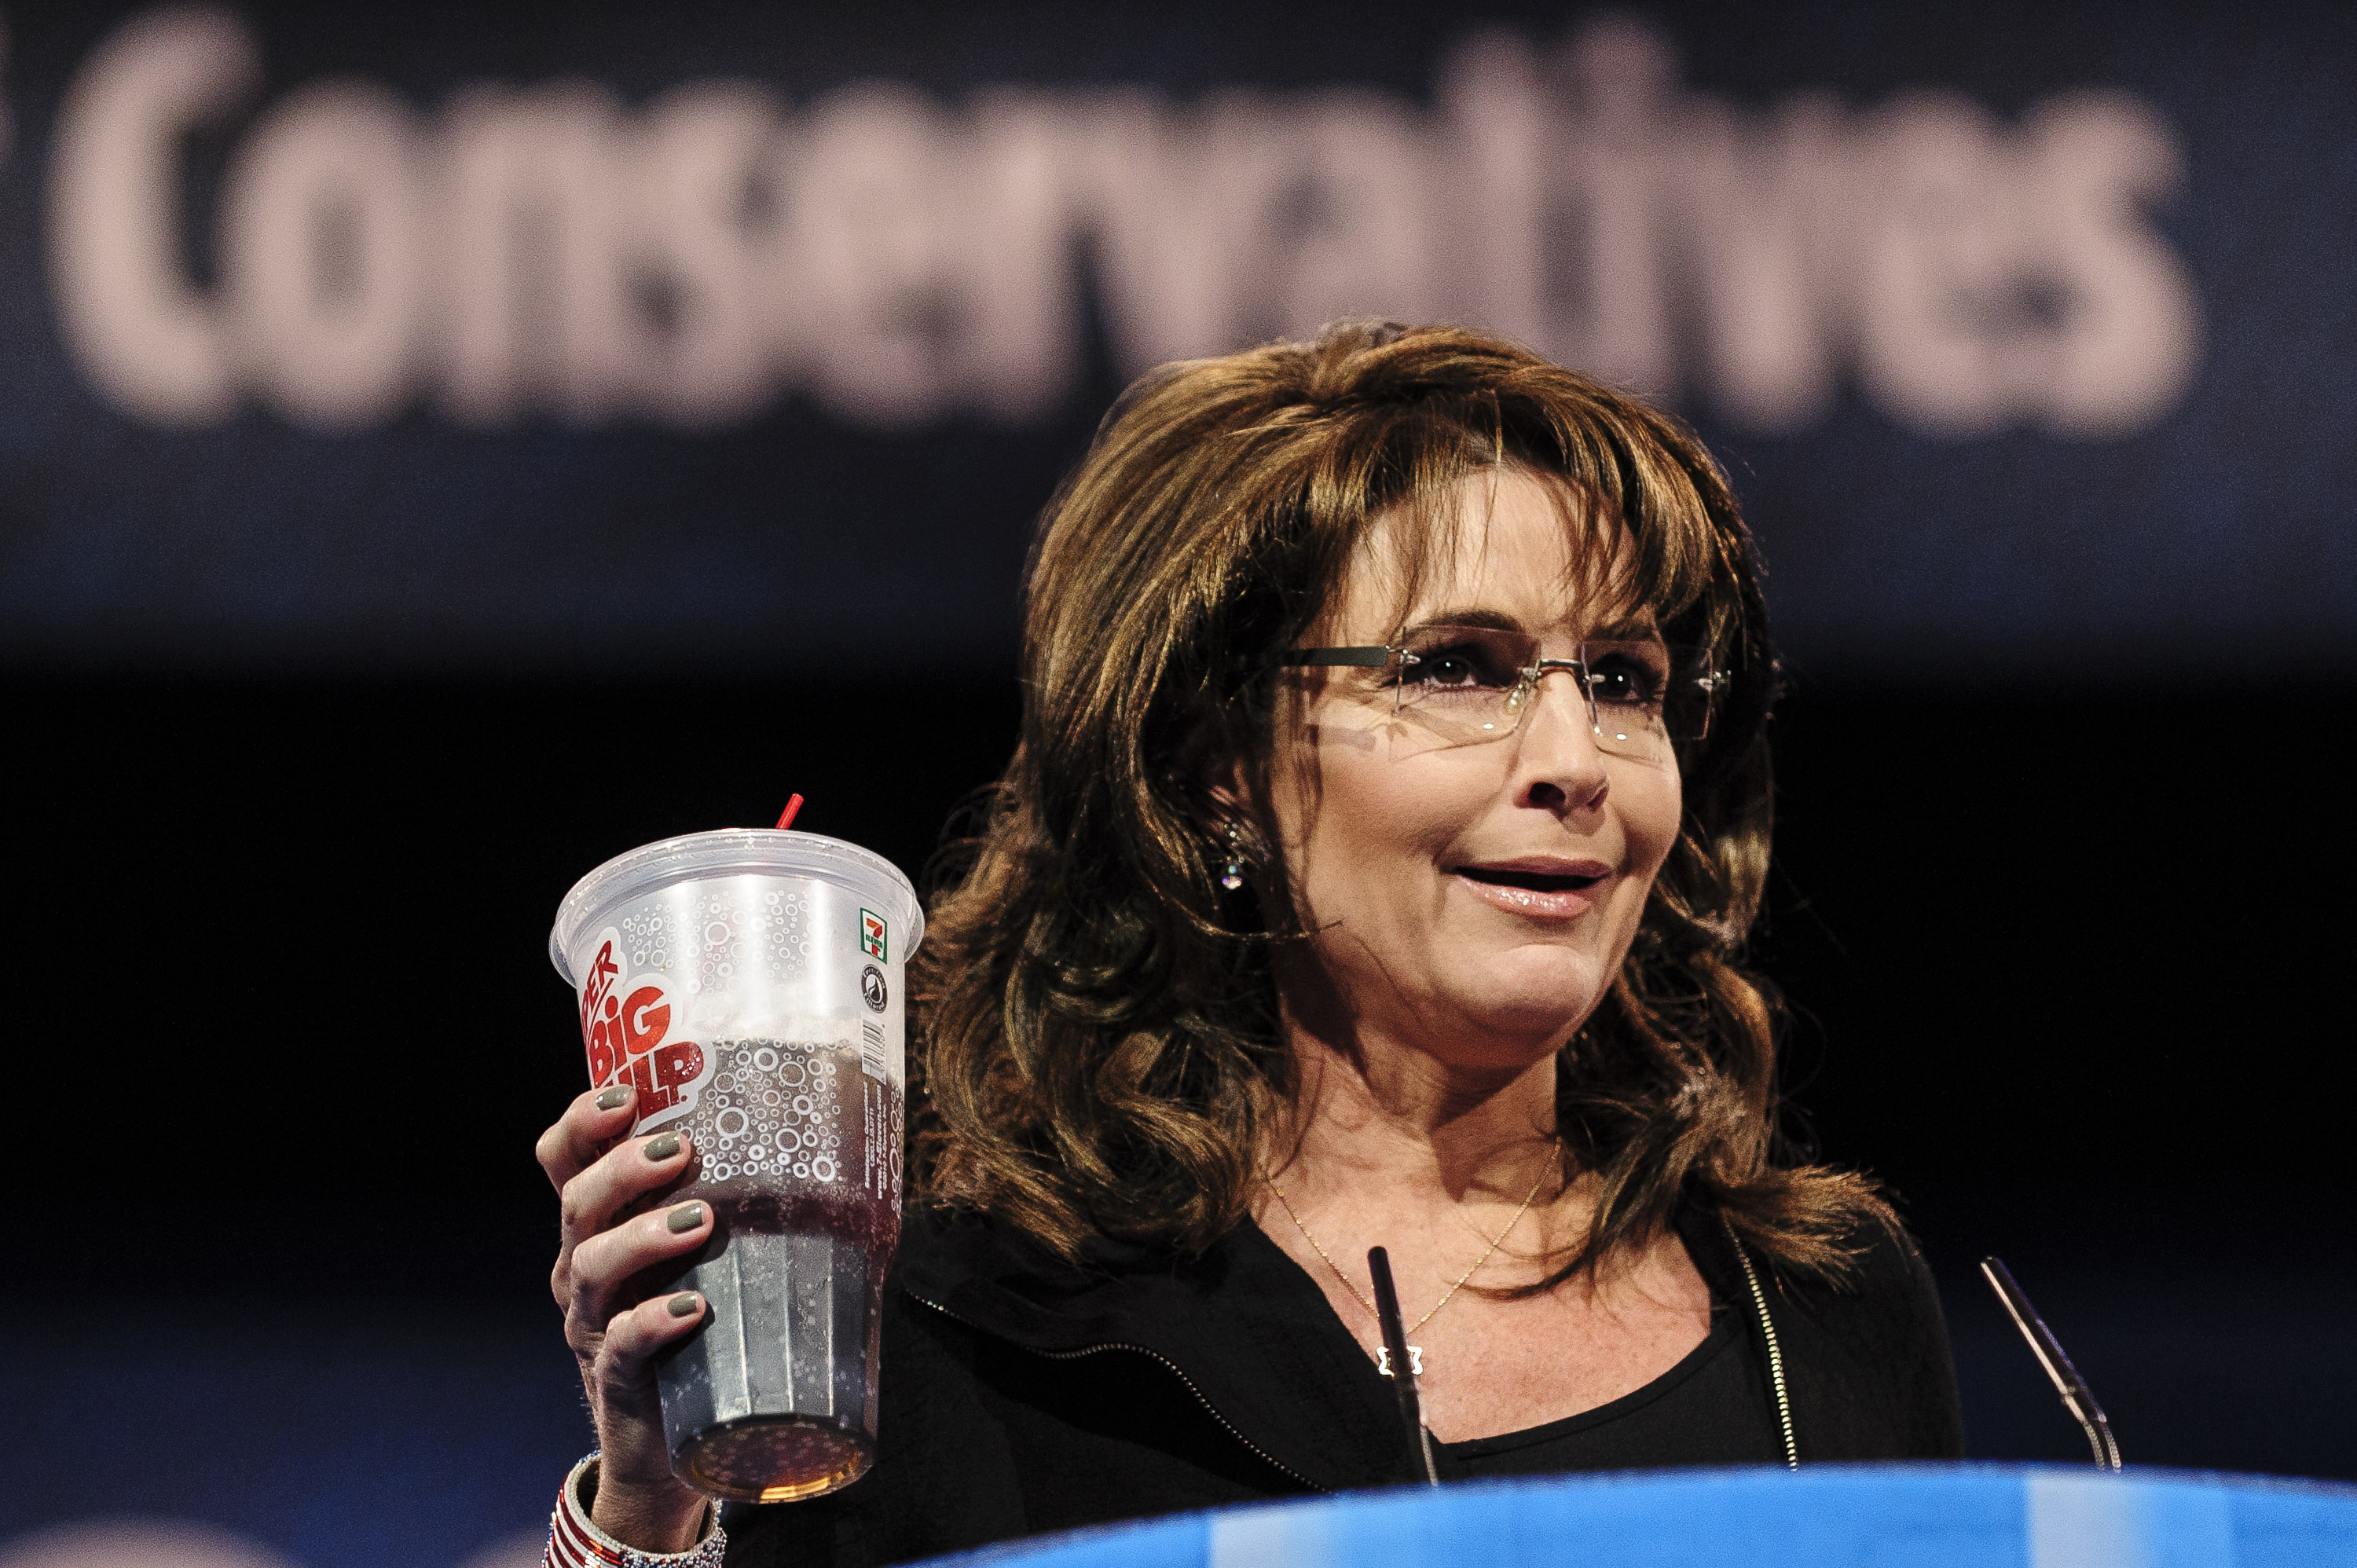 Former Republican vice presidential candidateSarah Palin drinks a large soda on stage at the 2013 Conservative Political Action Conference.